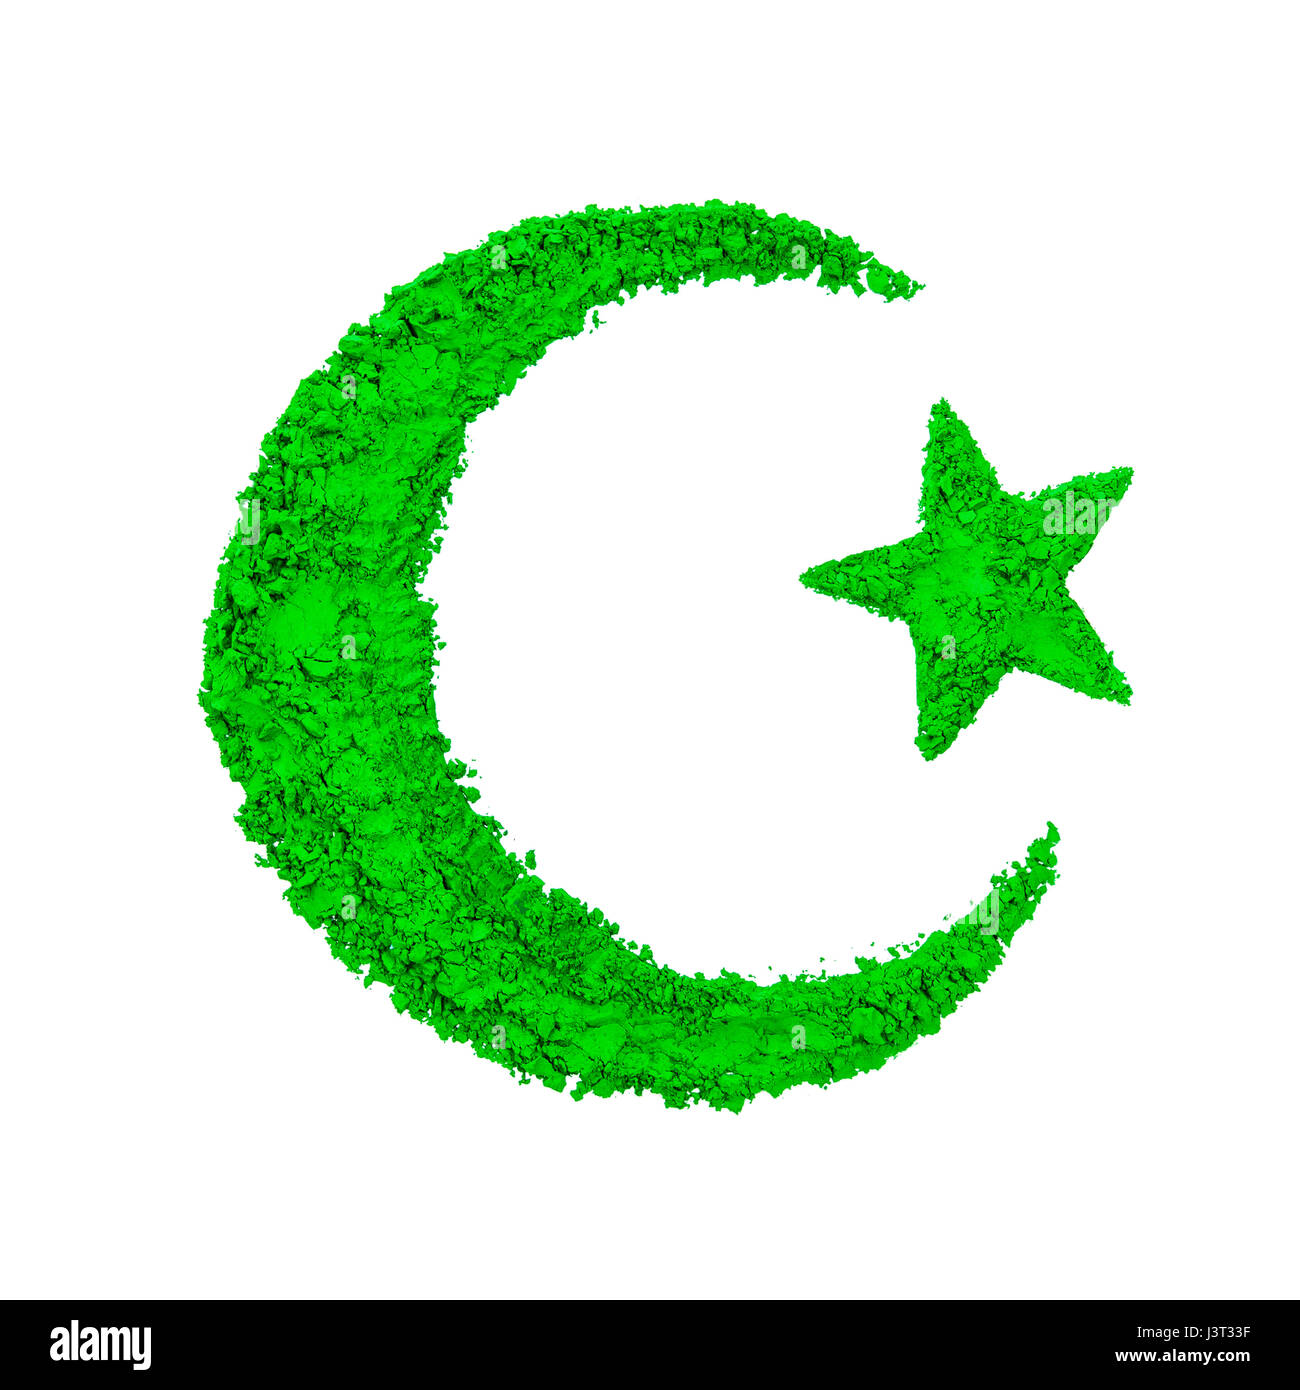 Crescent star symbol islam stock photos crescent star symbol crescent moon and star of islam made with green color powder isolated on a white biocorpaavc